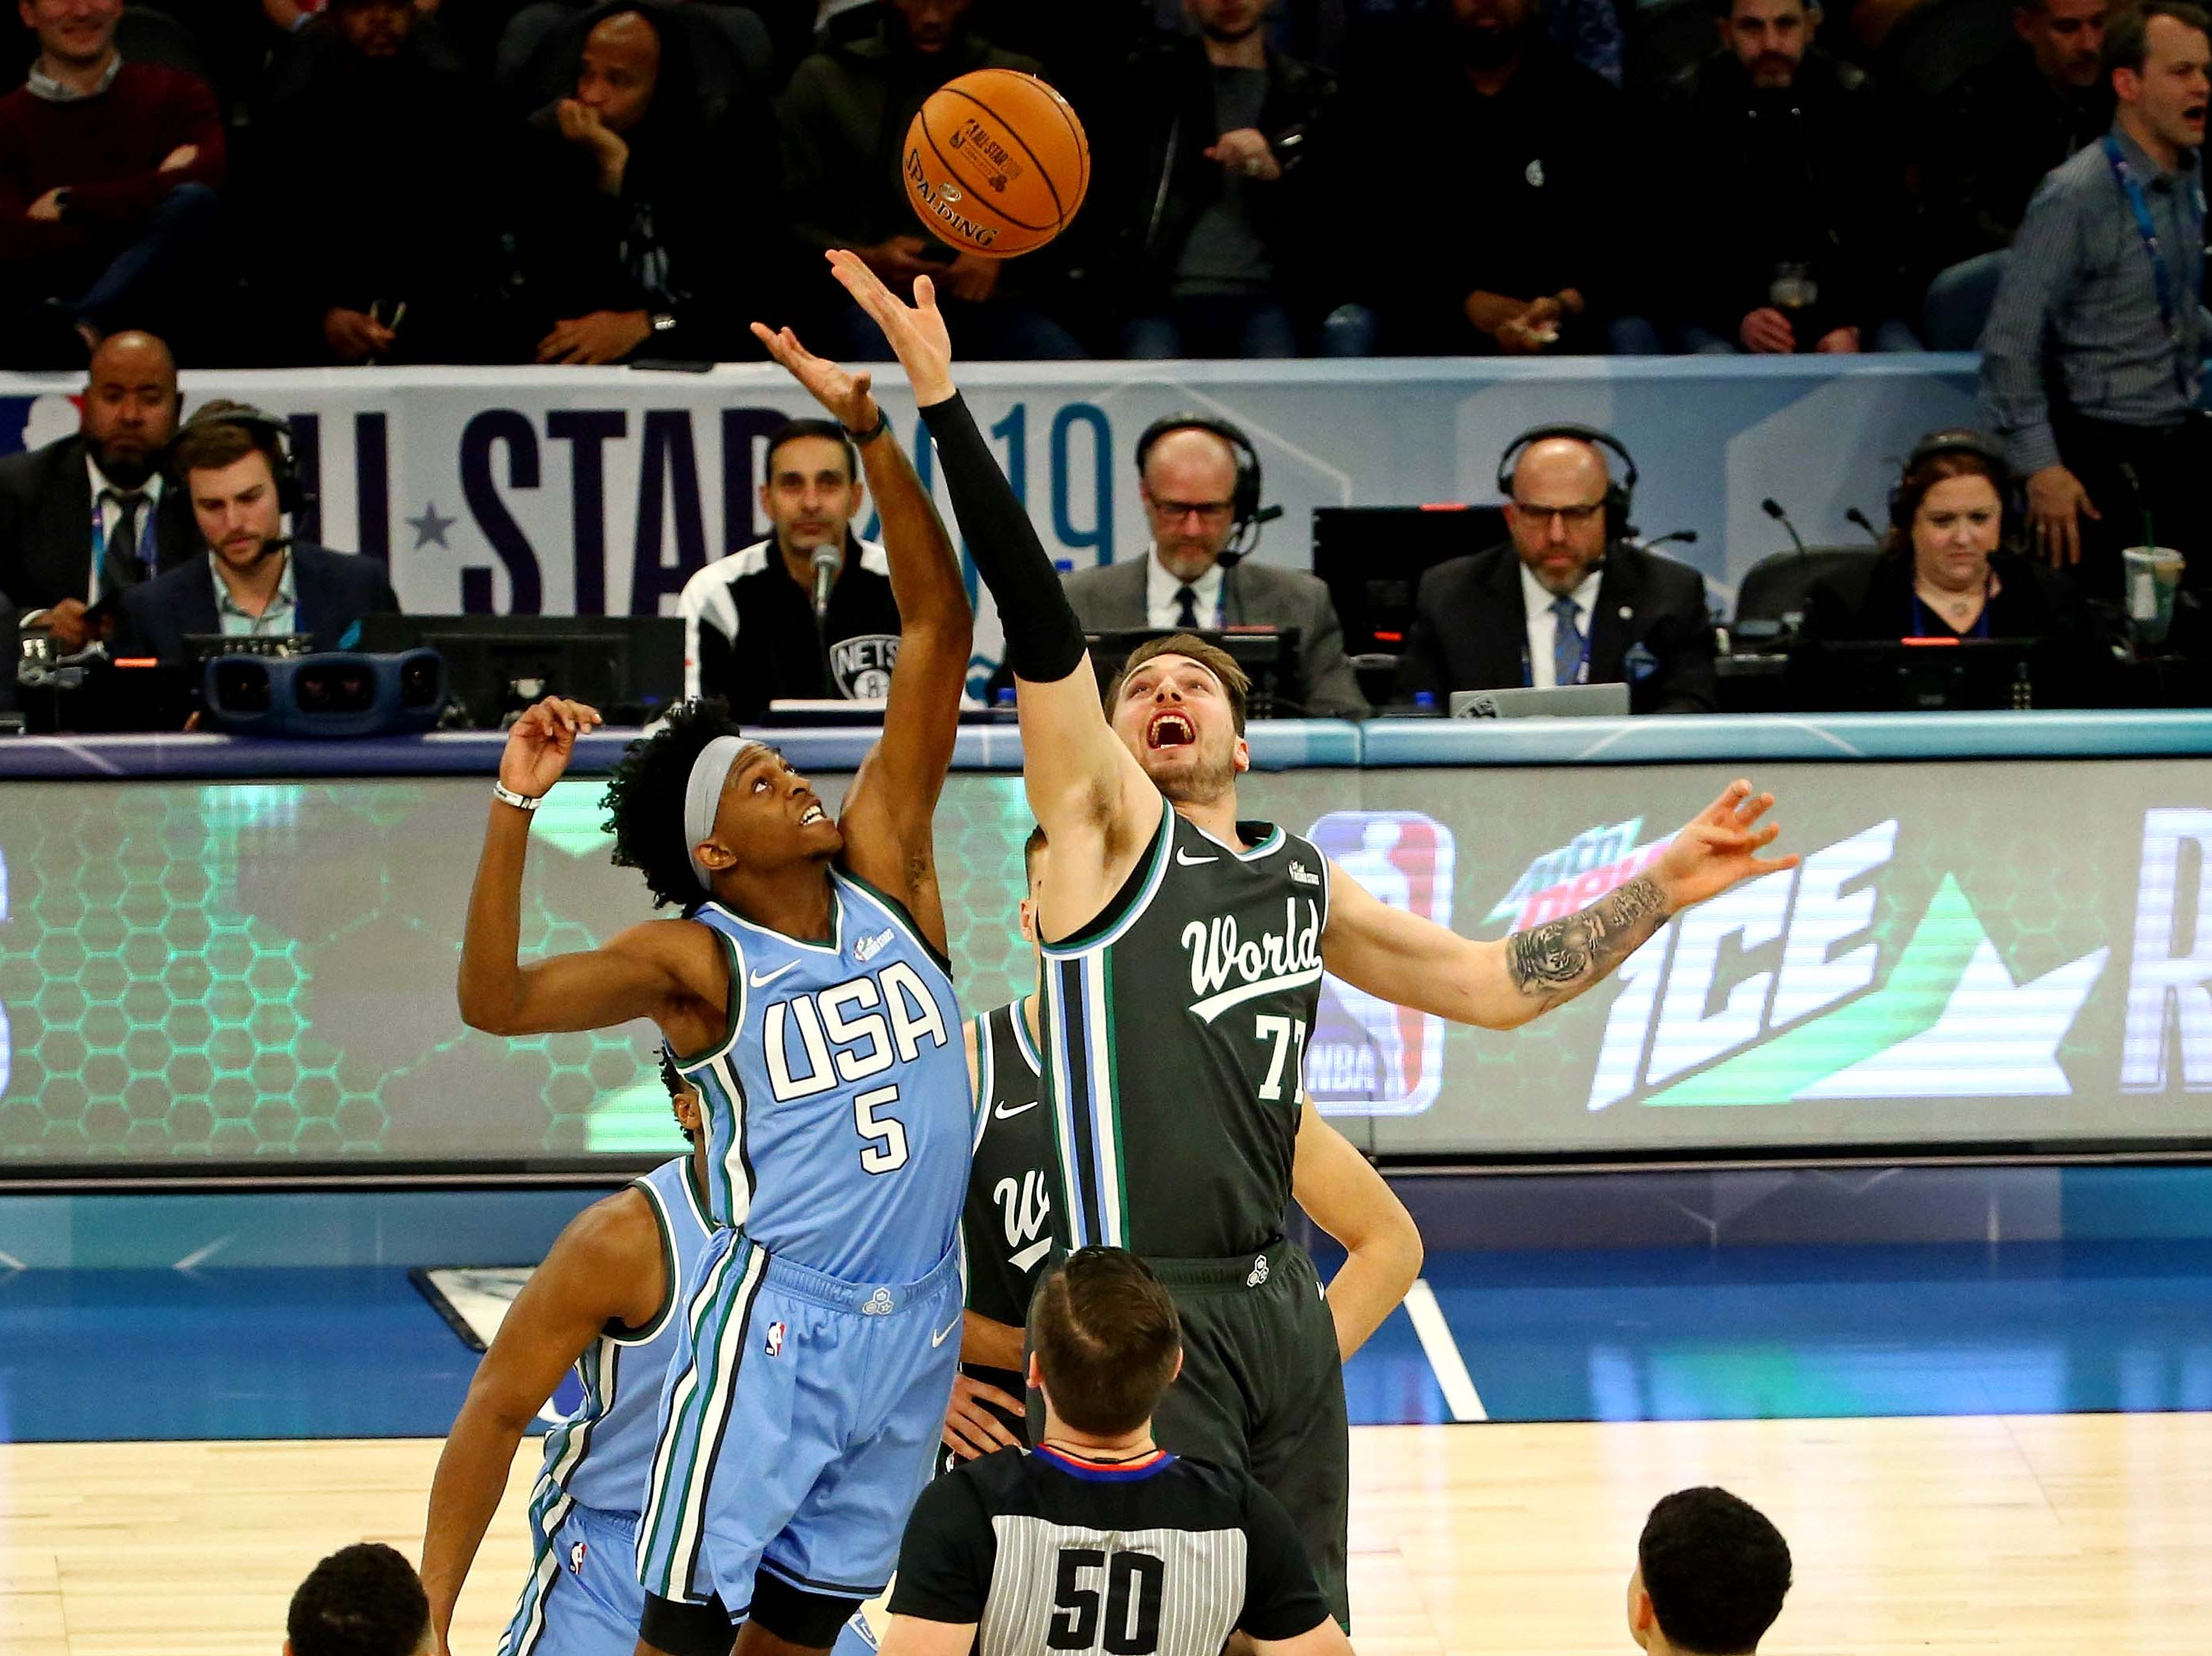 World Team guard Luka Doncic of the Dallas Mavericks and U.S. Team guard De'Aaron Fox of the Sacramento Kings go for the opening tip during the All-Star Rising Stars game.